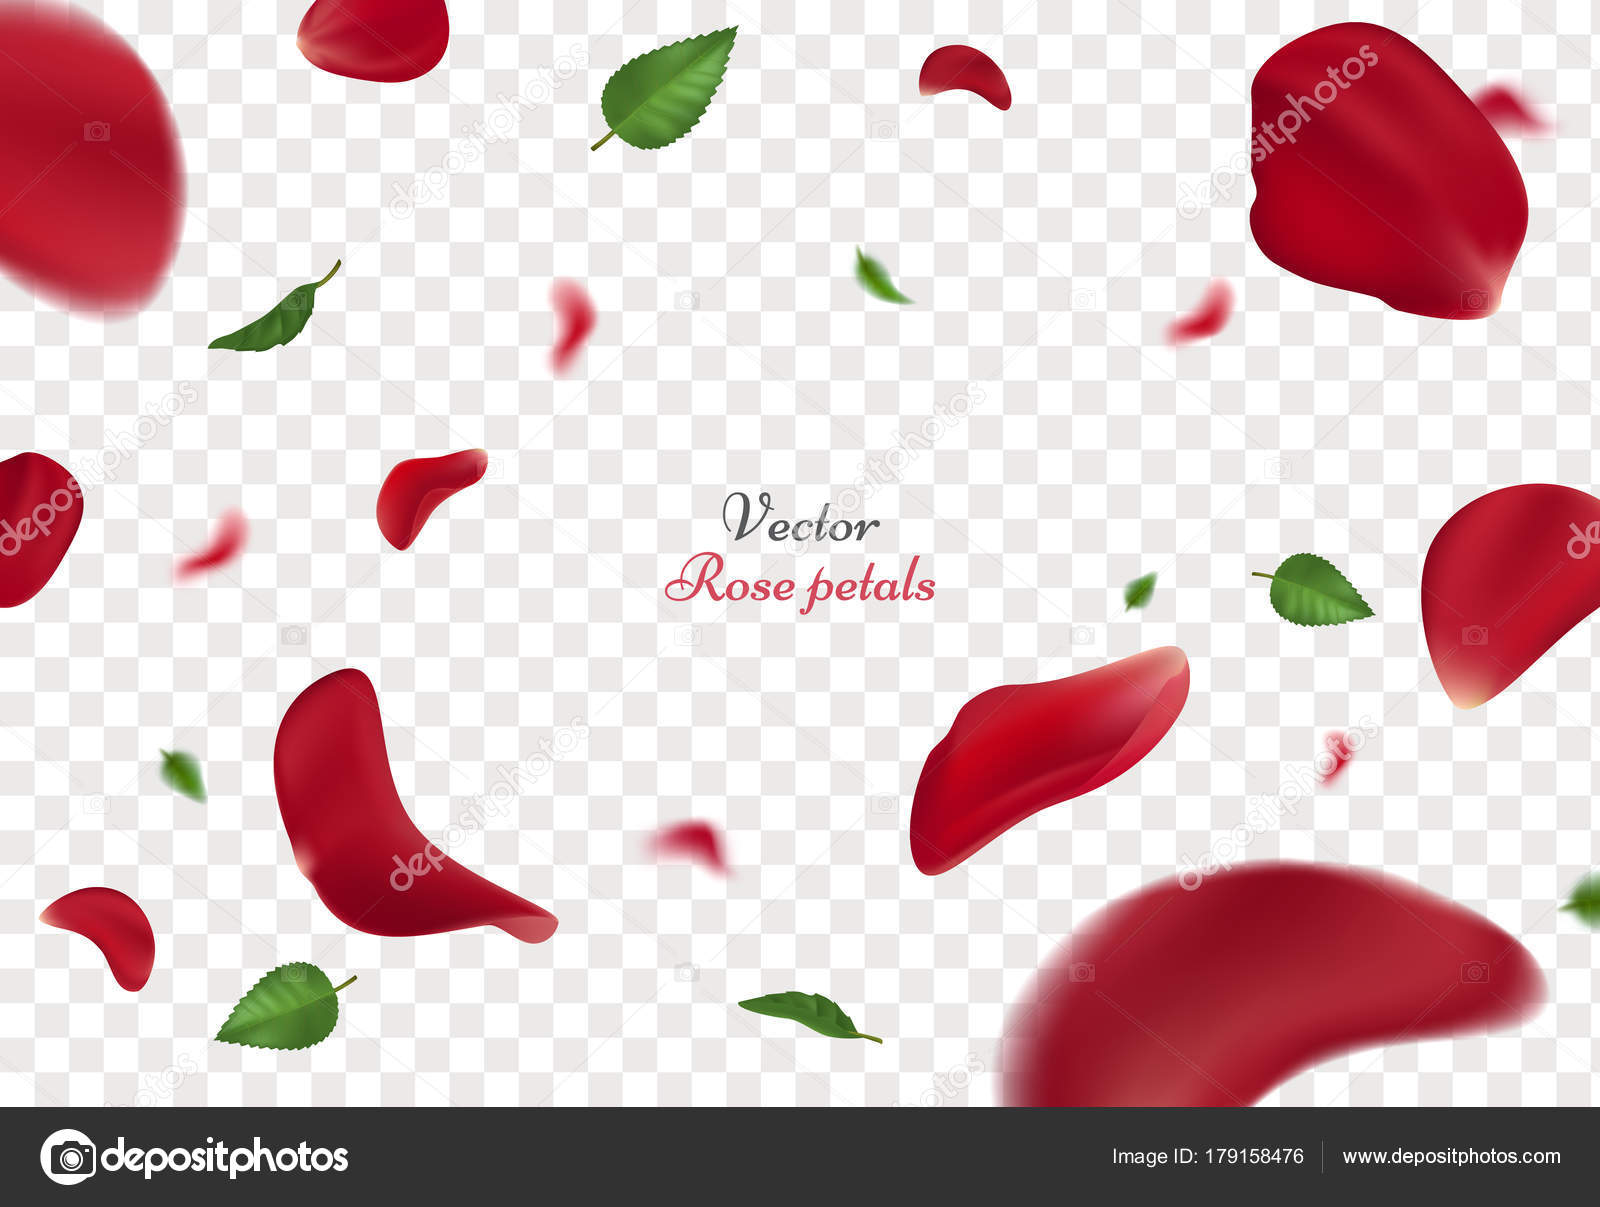 Red rose petals and green leaves isolated on transparent background vector illustration with beauty roses petal applicable for design of greeting cards on women day and valentines day kristyandbryce Gallery